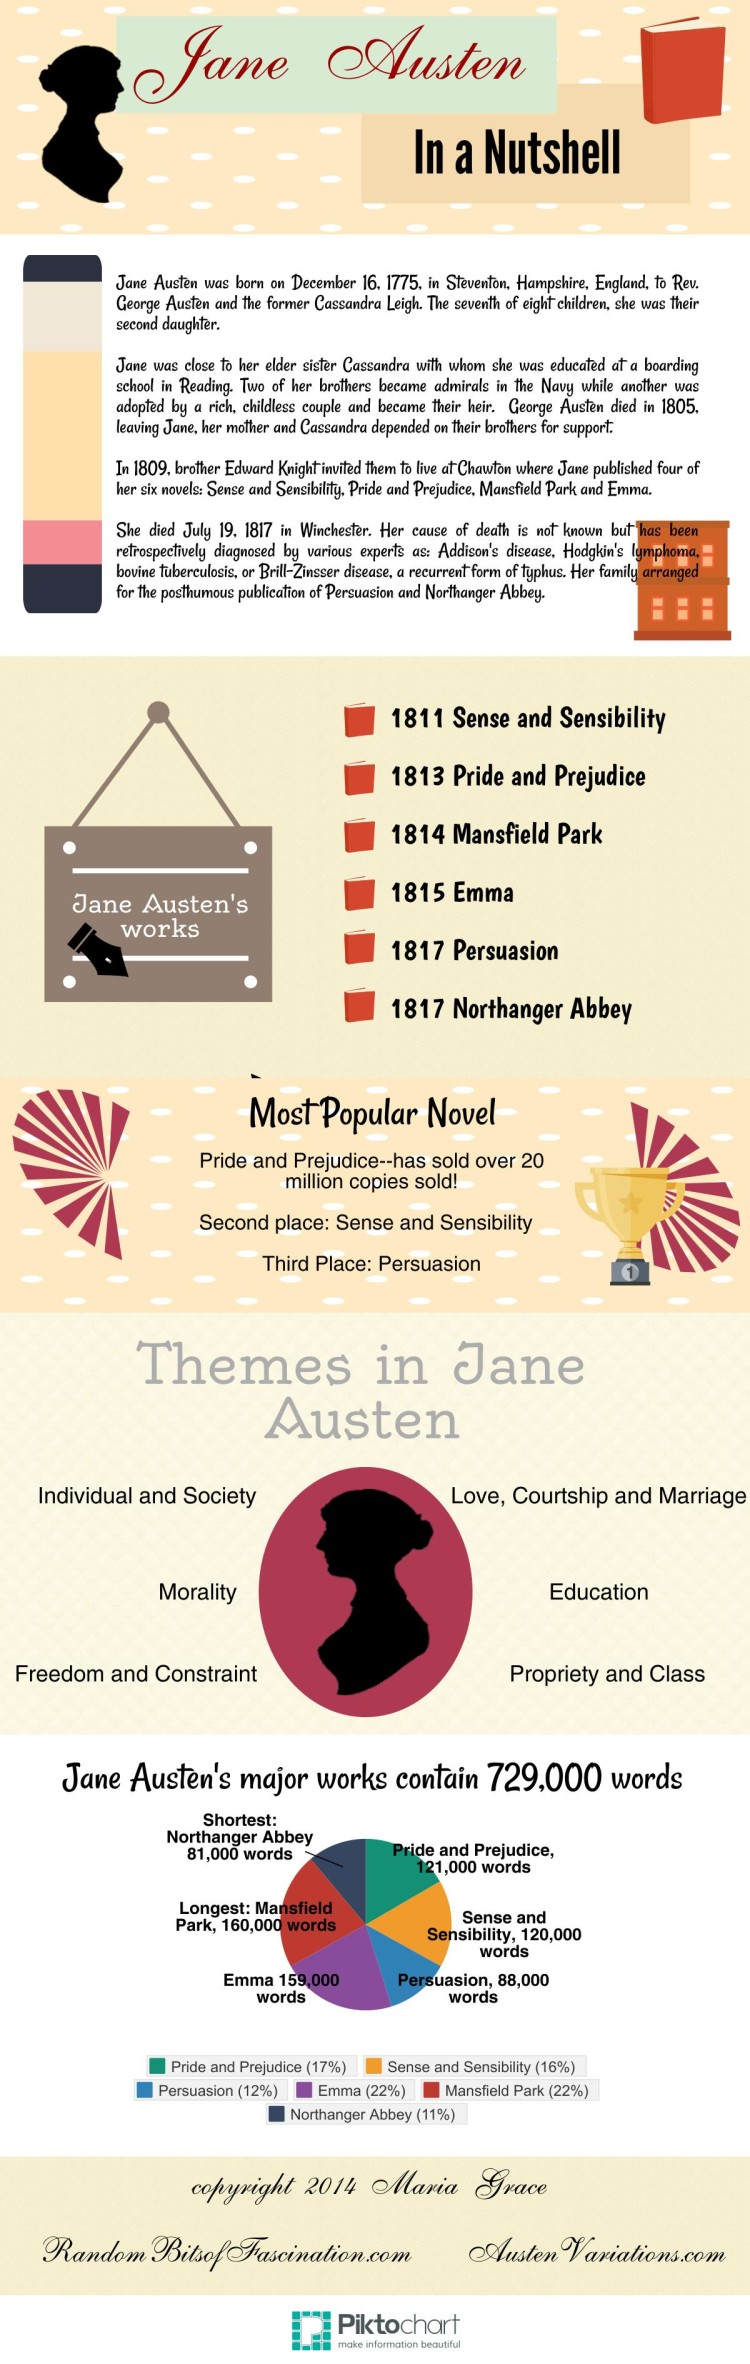 Jane Austen in a Nutshell